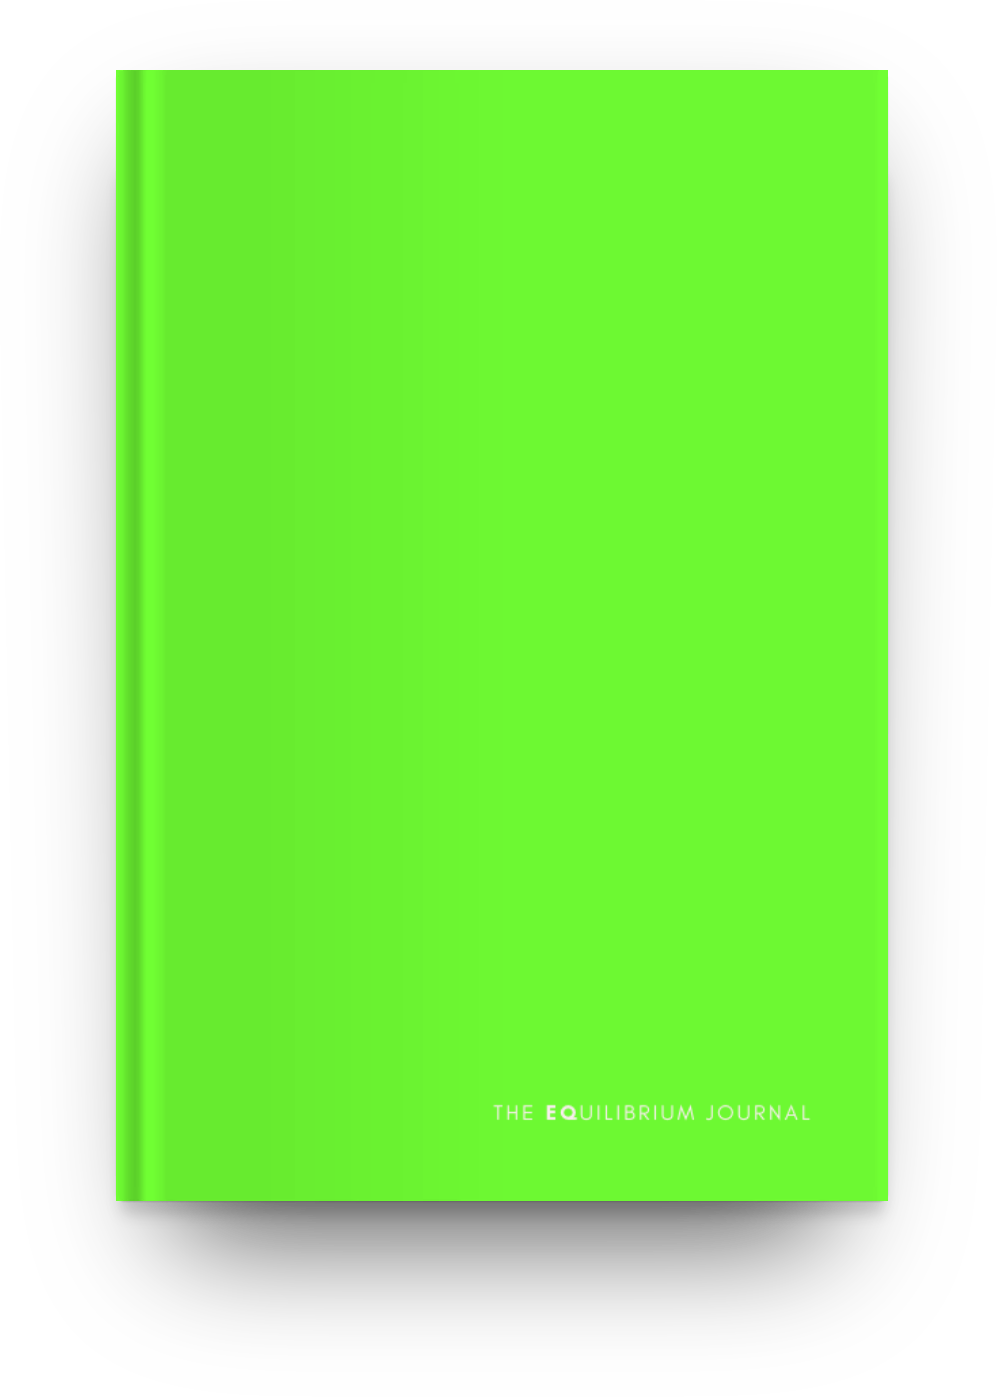 The Equilibrium Journal